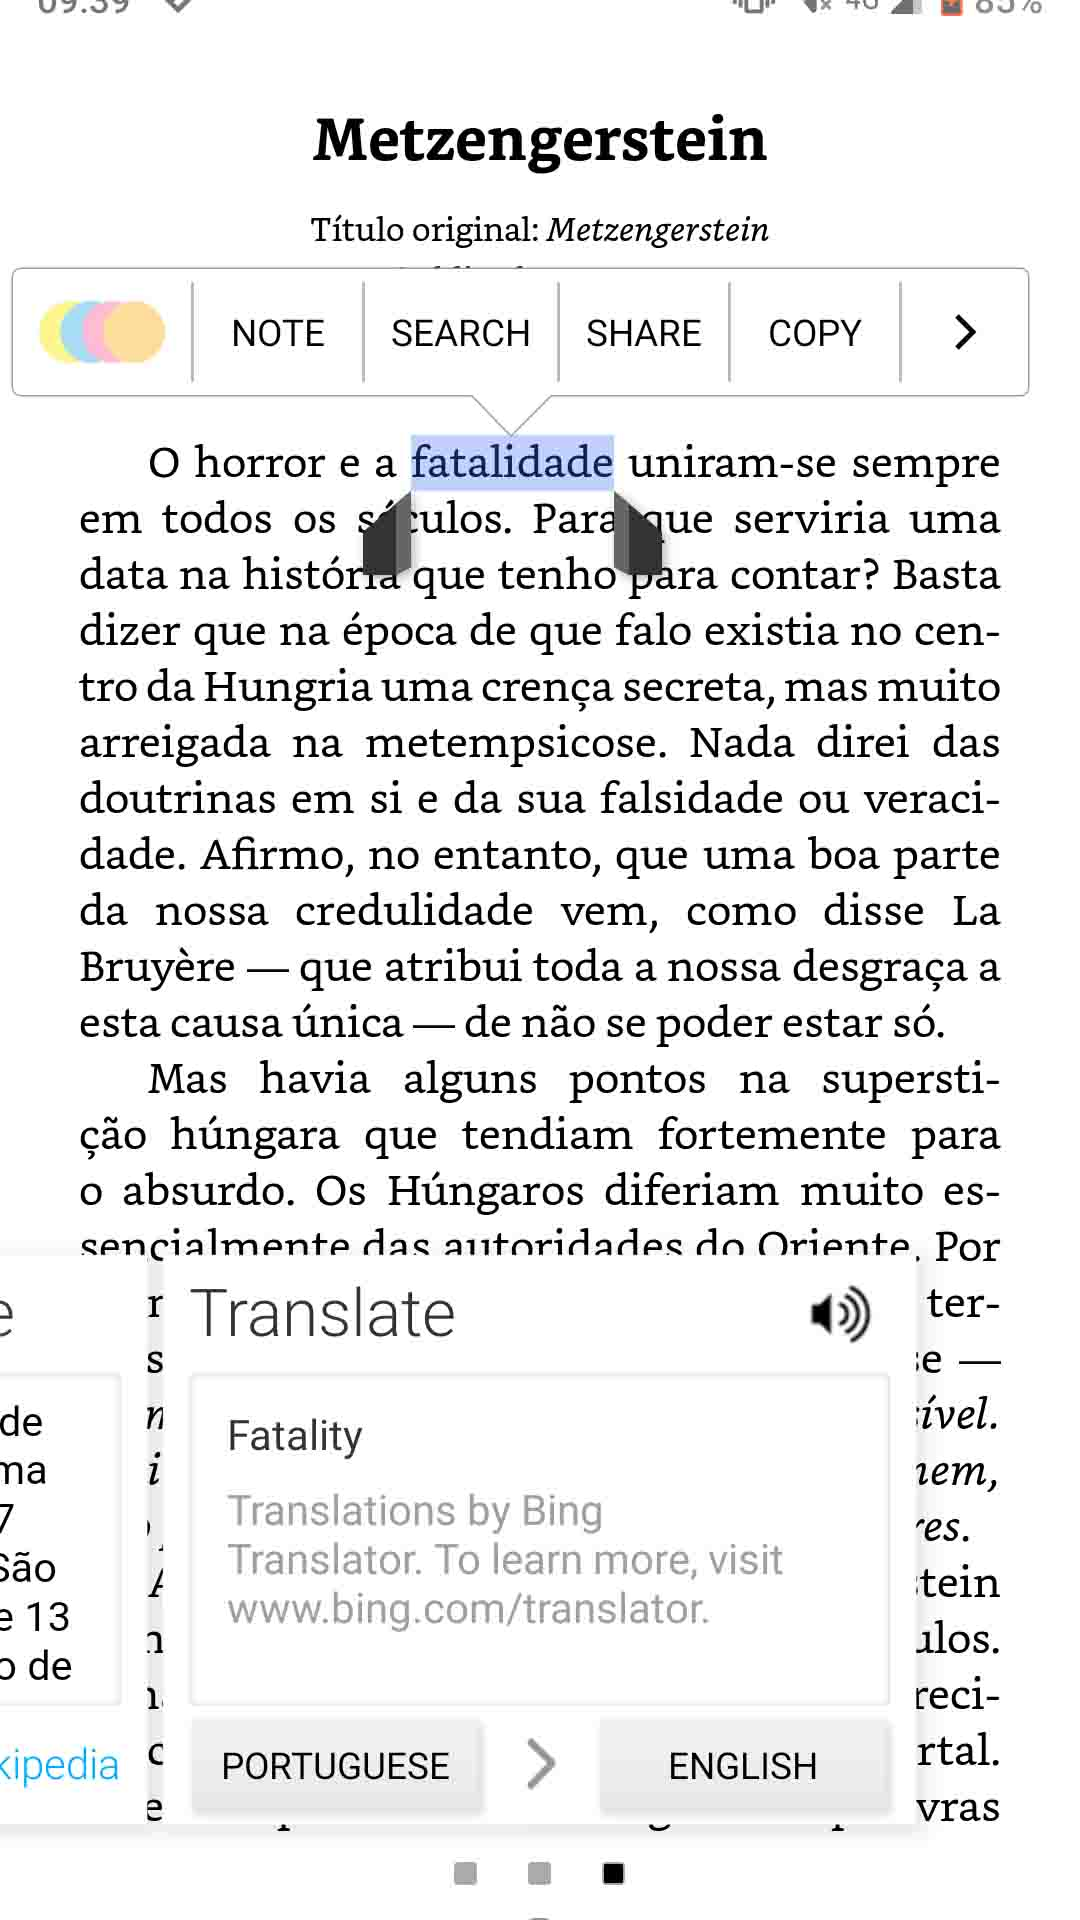 kindle app translating a word screenshot